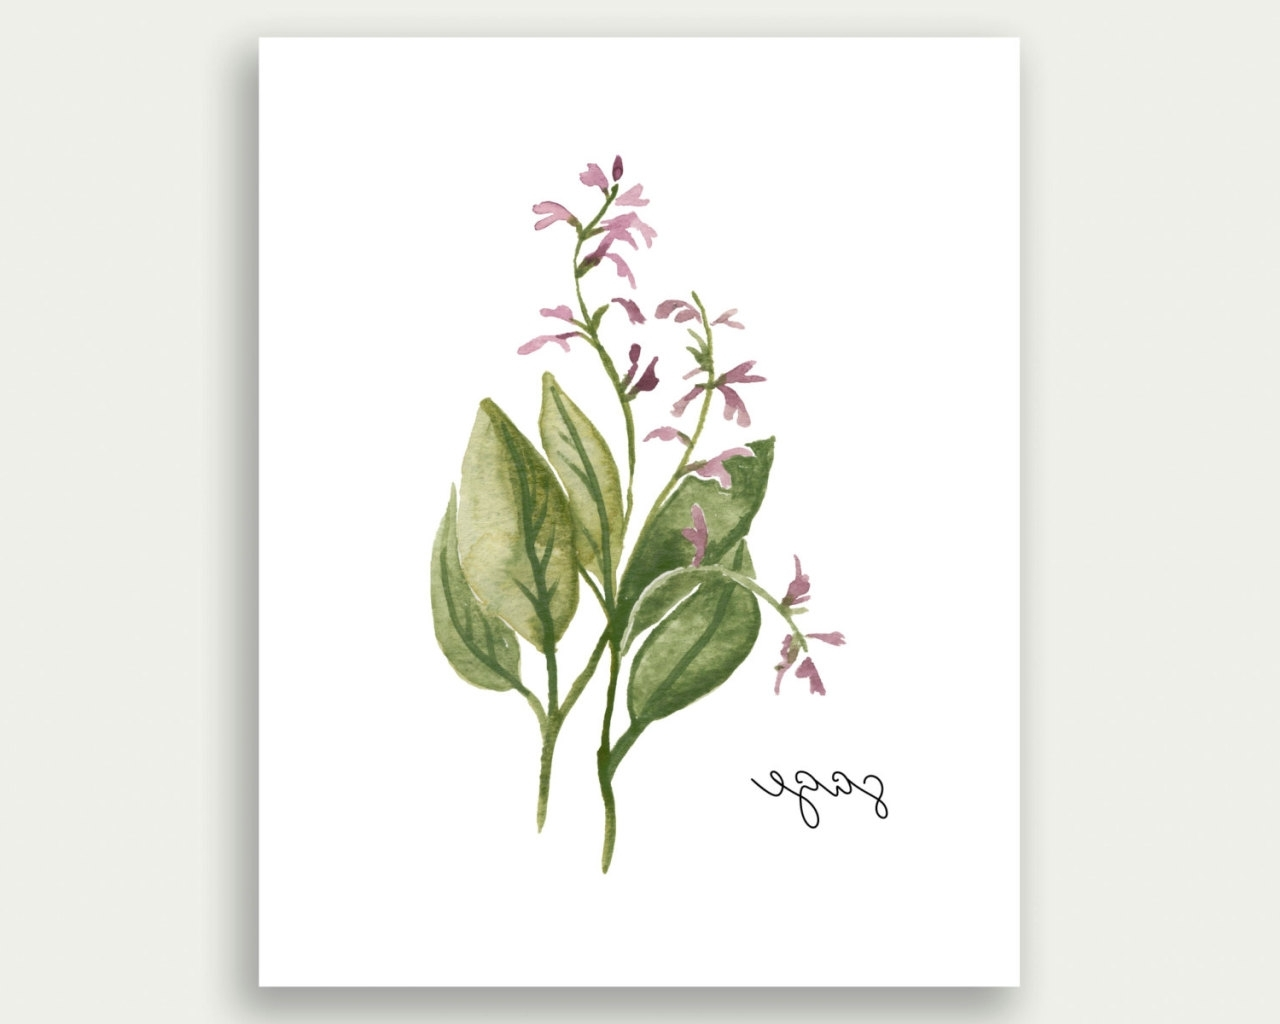 Watercolor Landcolor Skycolor — Herb Wall Art, Herb Print, Sage Wall Throughout Most Recent Herb Wall Art (View 13 of 15)